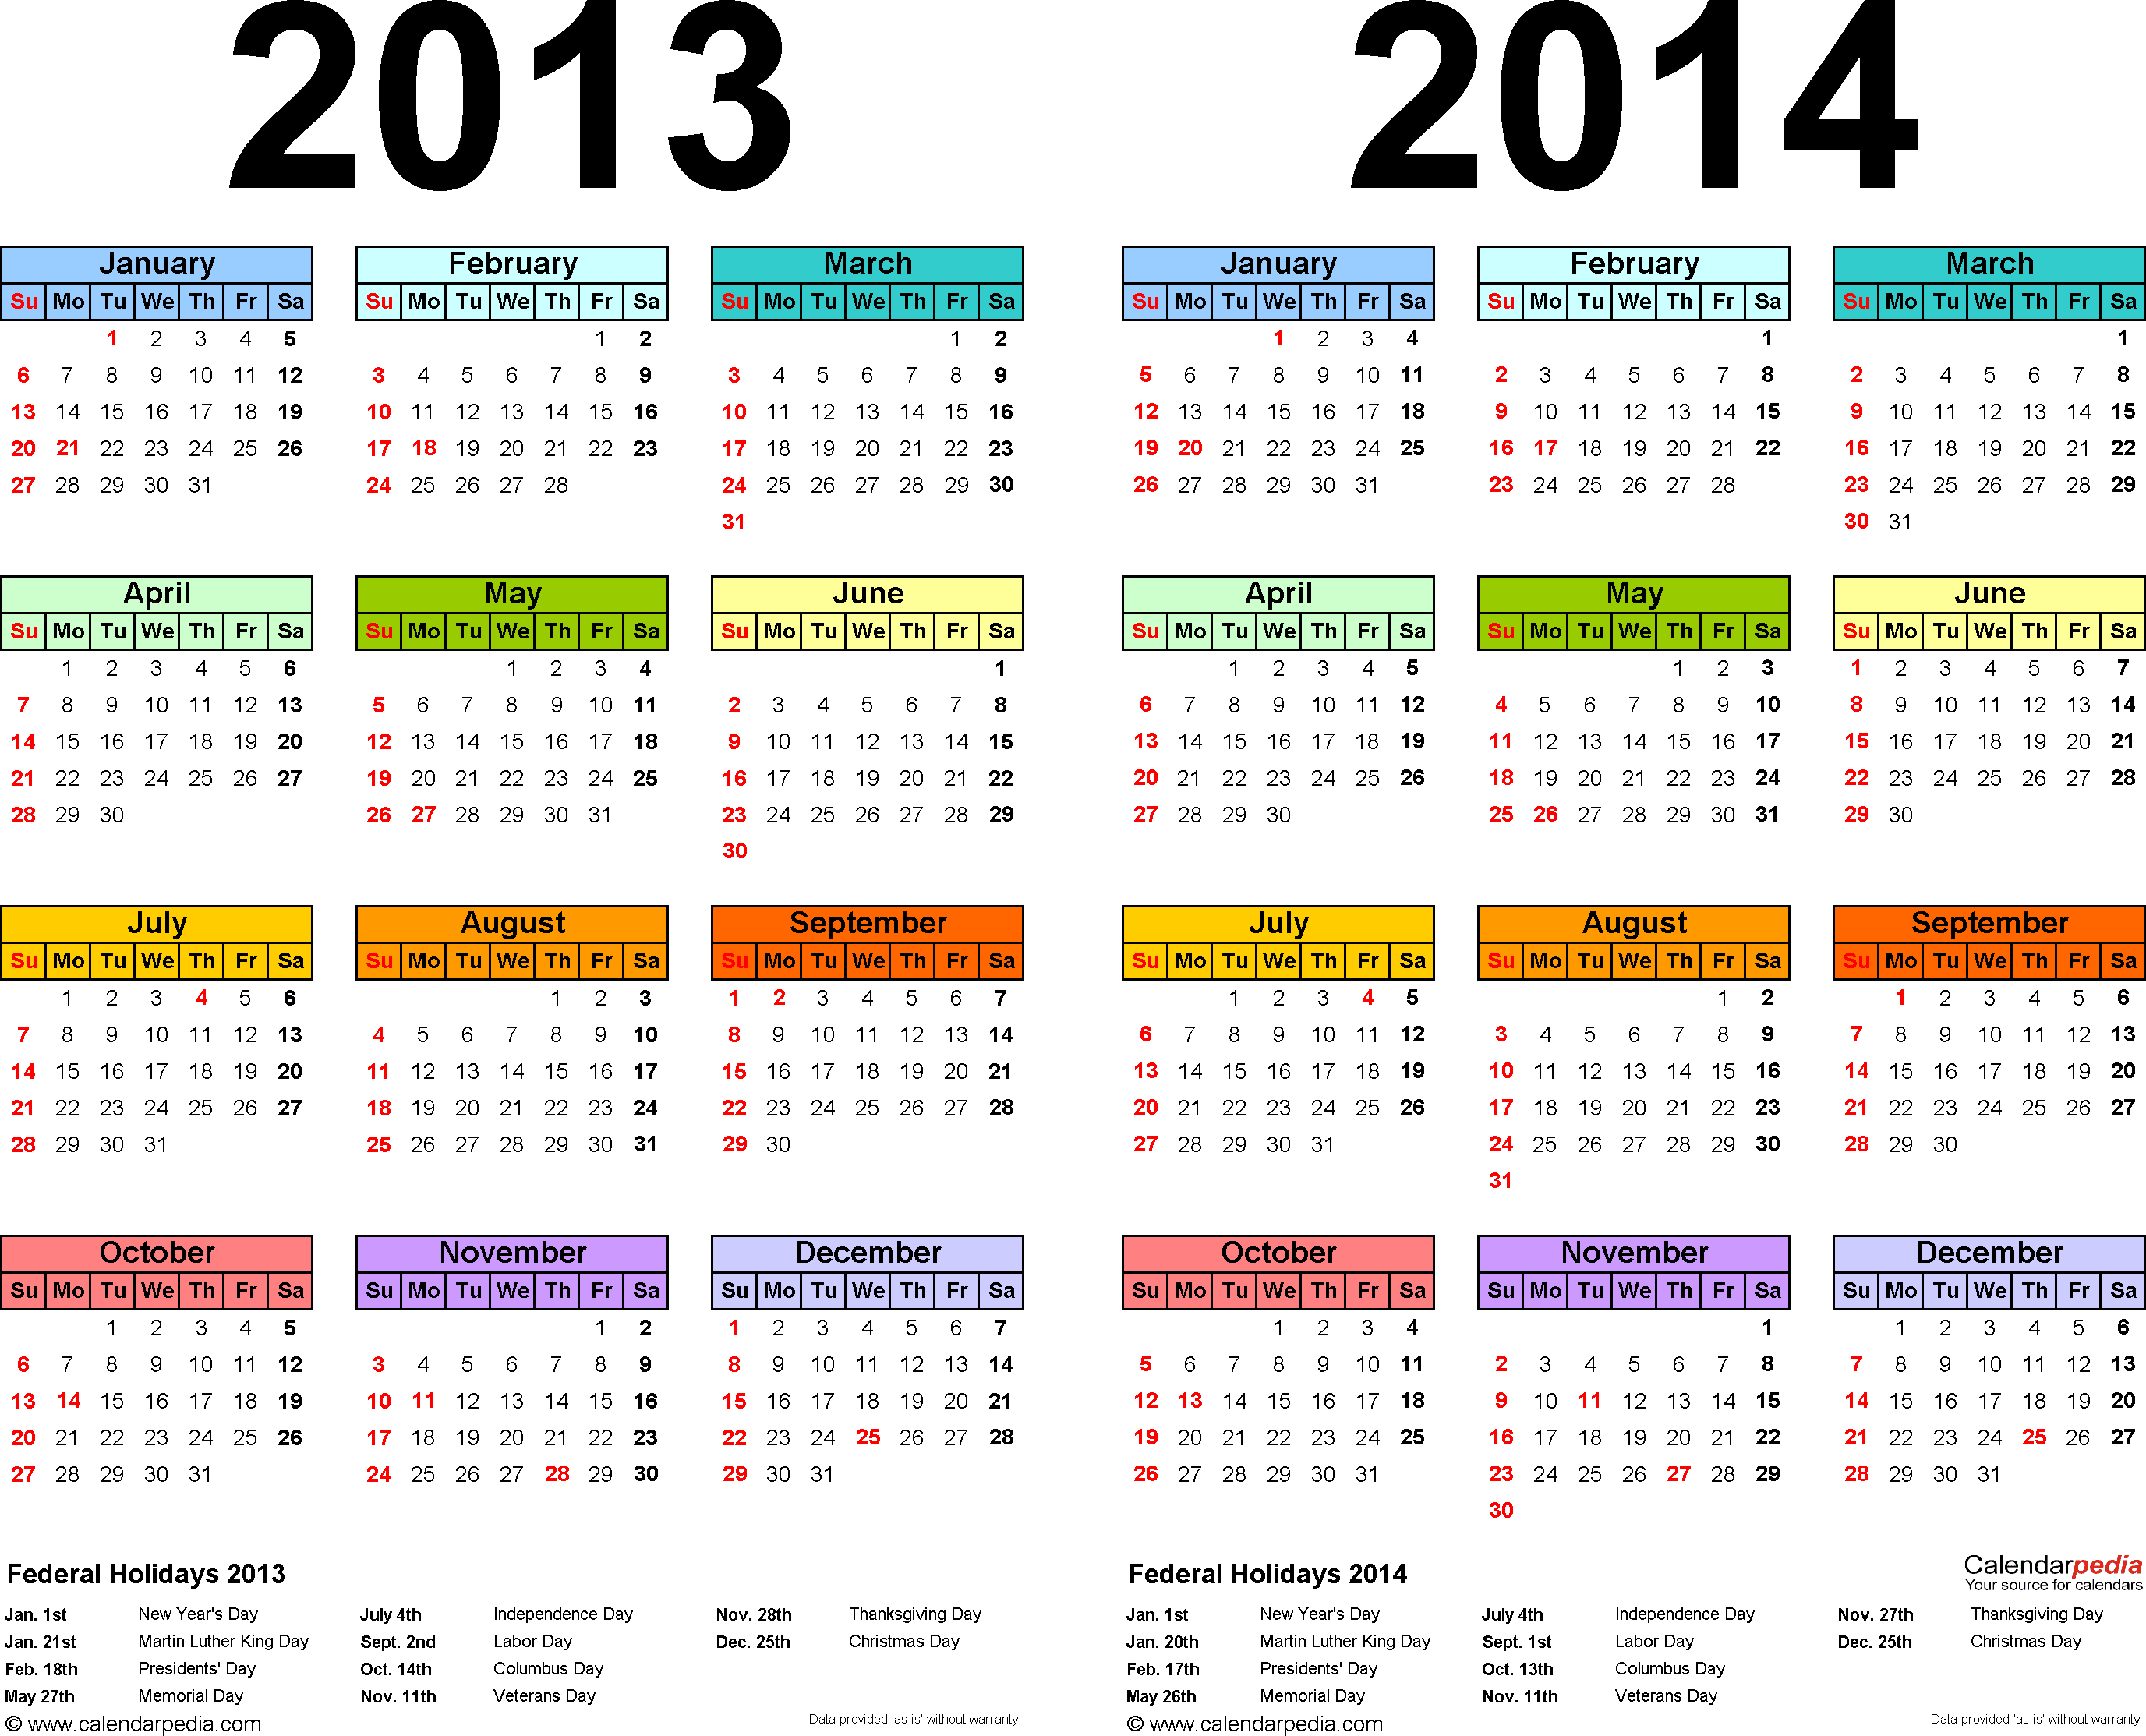 Download Template 1: PDF template for two year calendar 2013/2014 (landscape orientation, 1 page, years side by side, multi-colored)